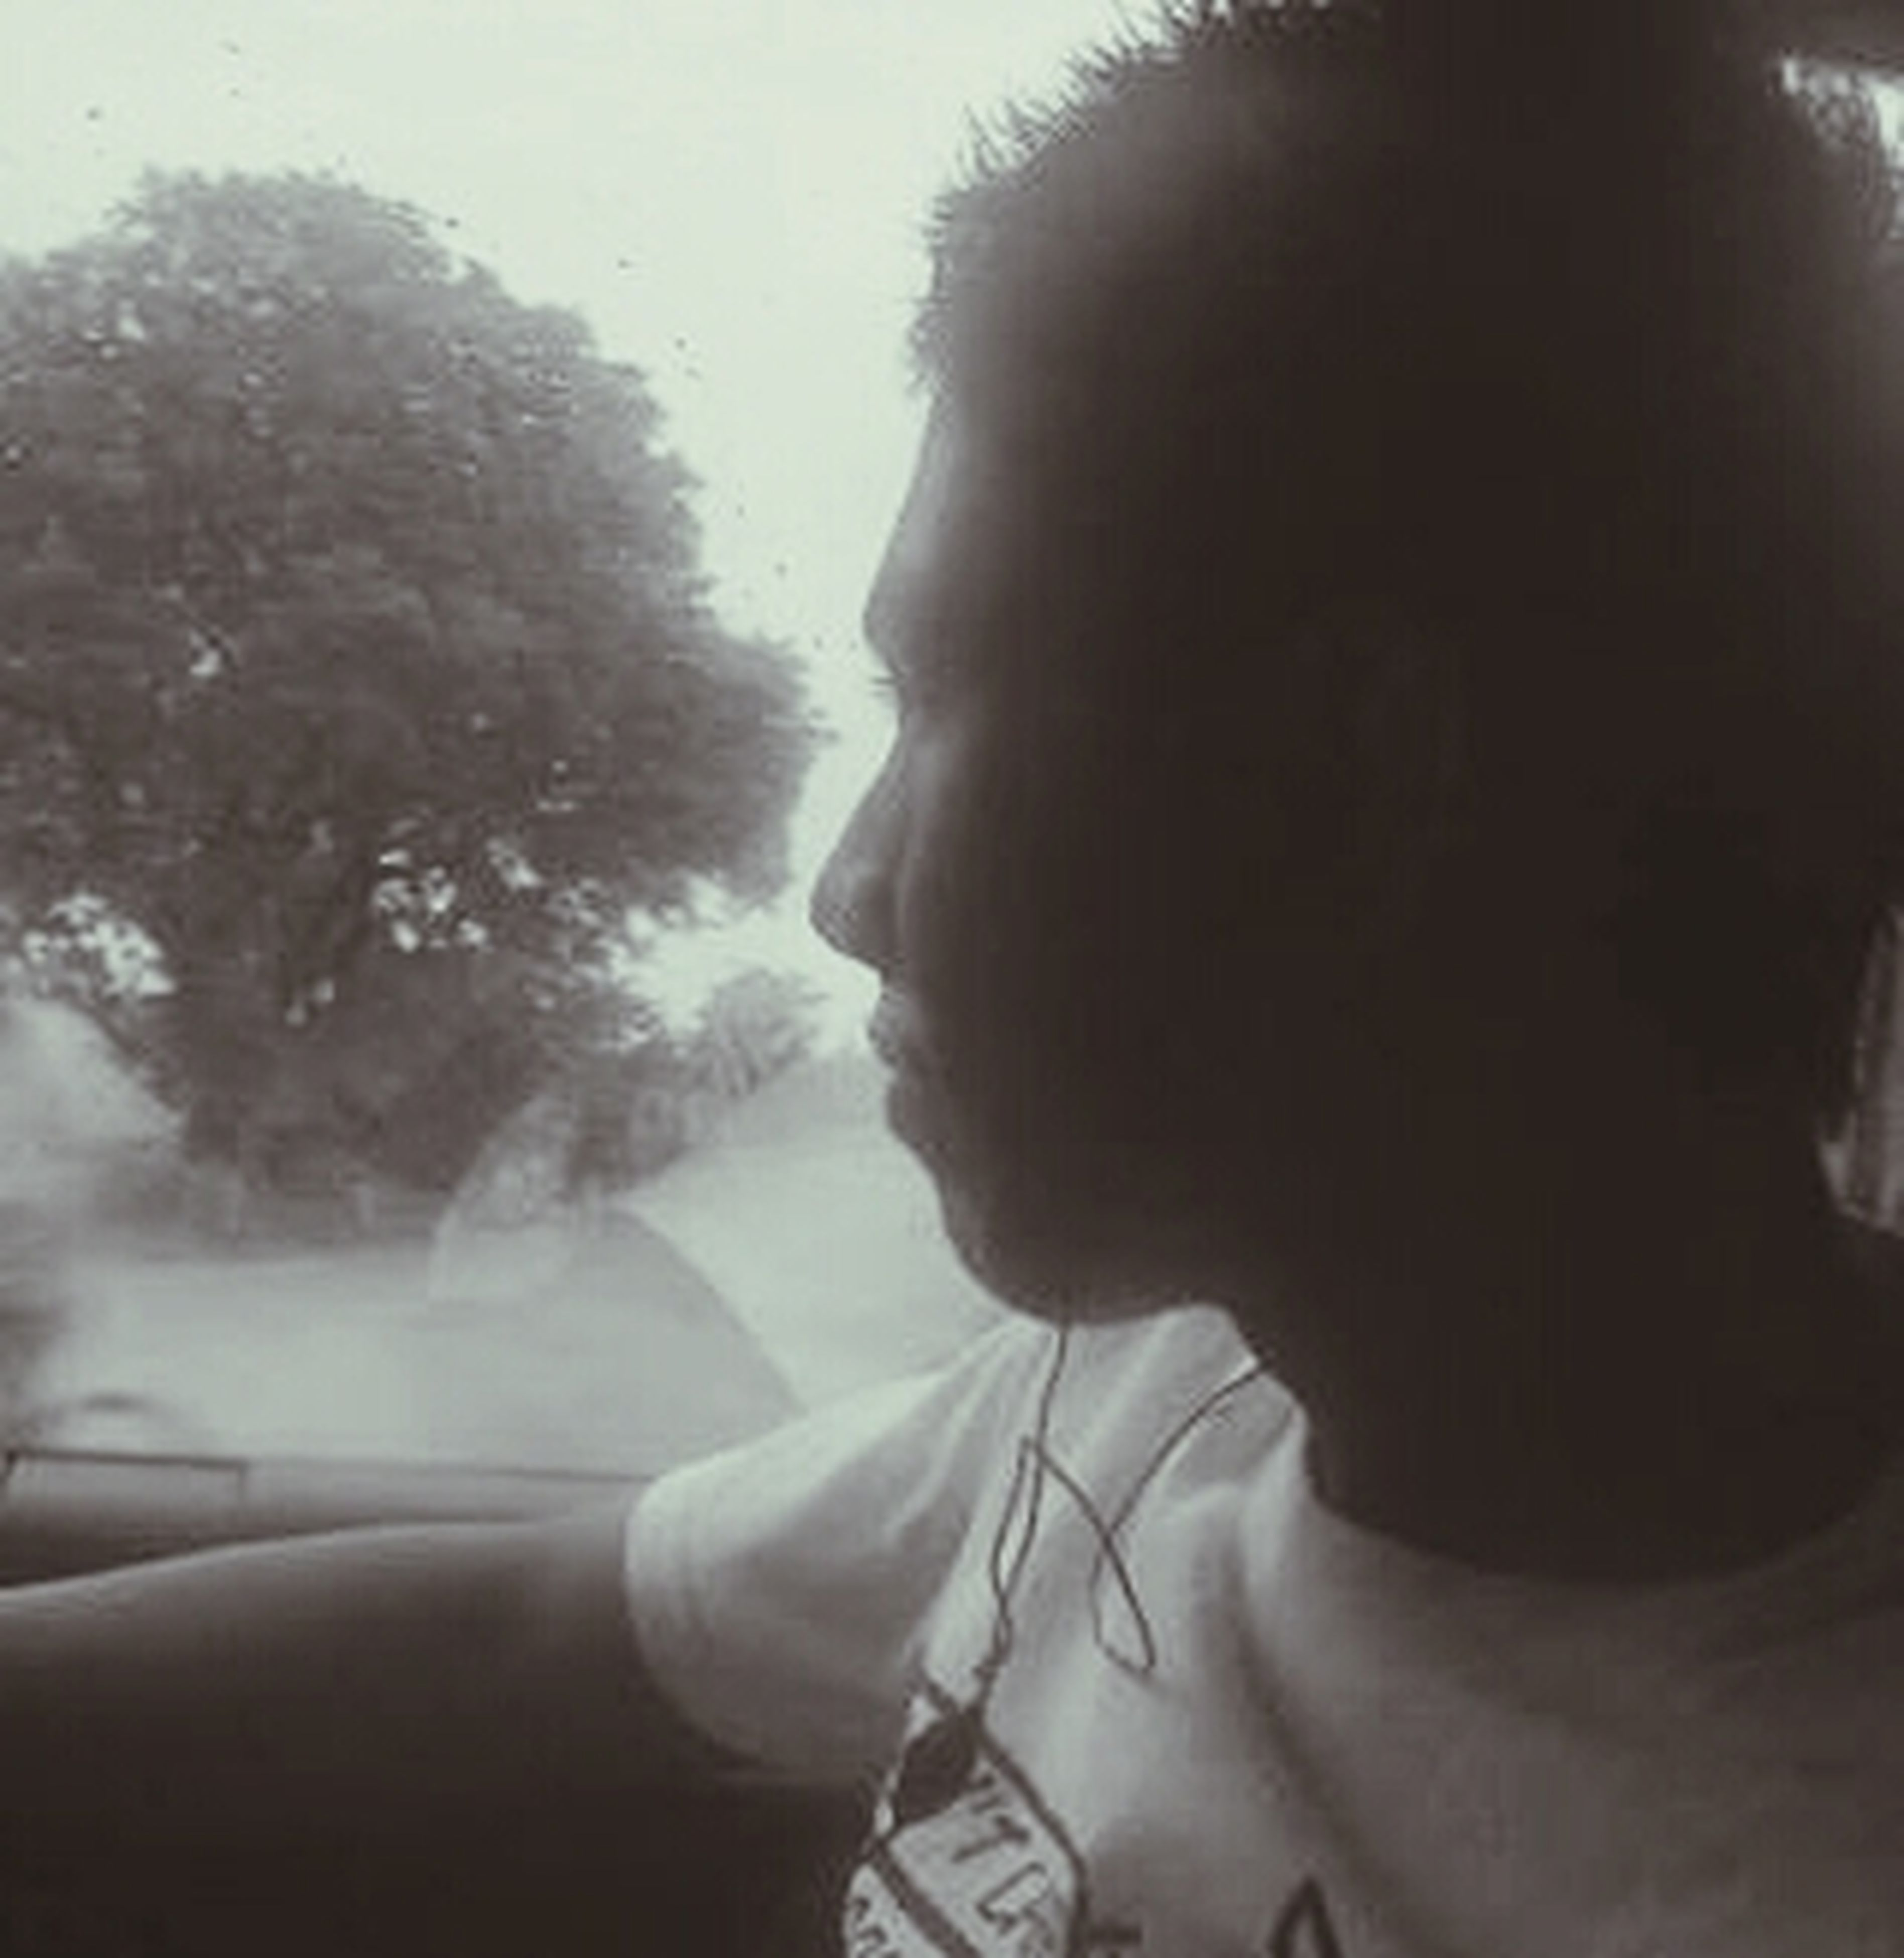 lifestyles, leisure activity, headshot, men, indoors, young adult, tree, window, glass - material, vehicle interior, waist up, young men, fog, transparent, rear view, travel, side view, day